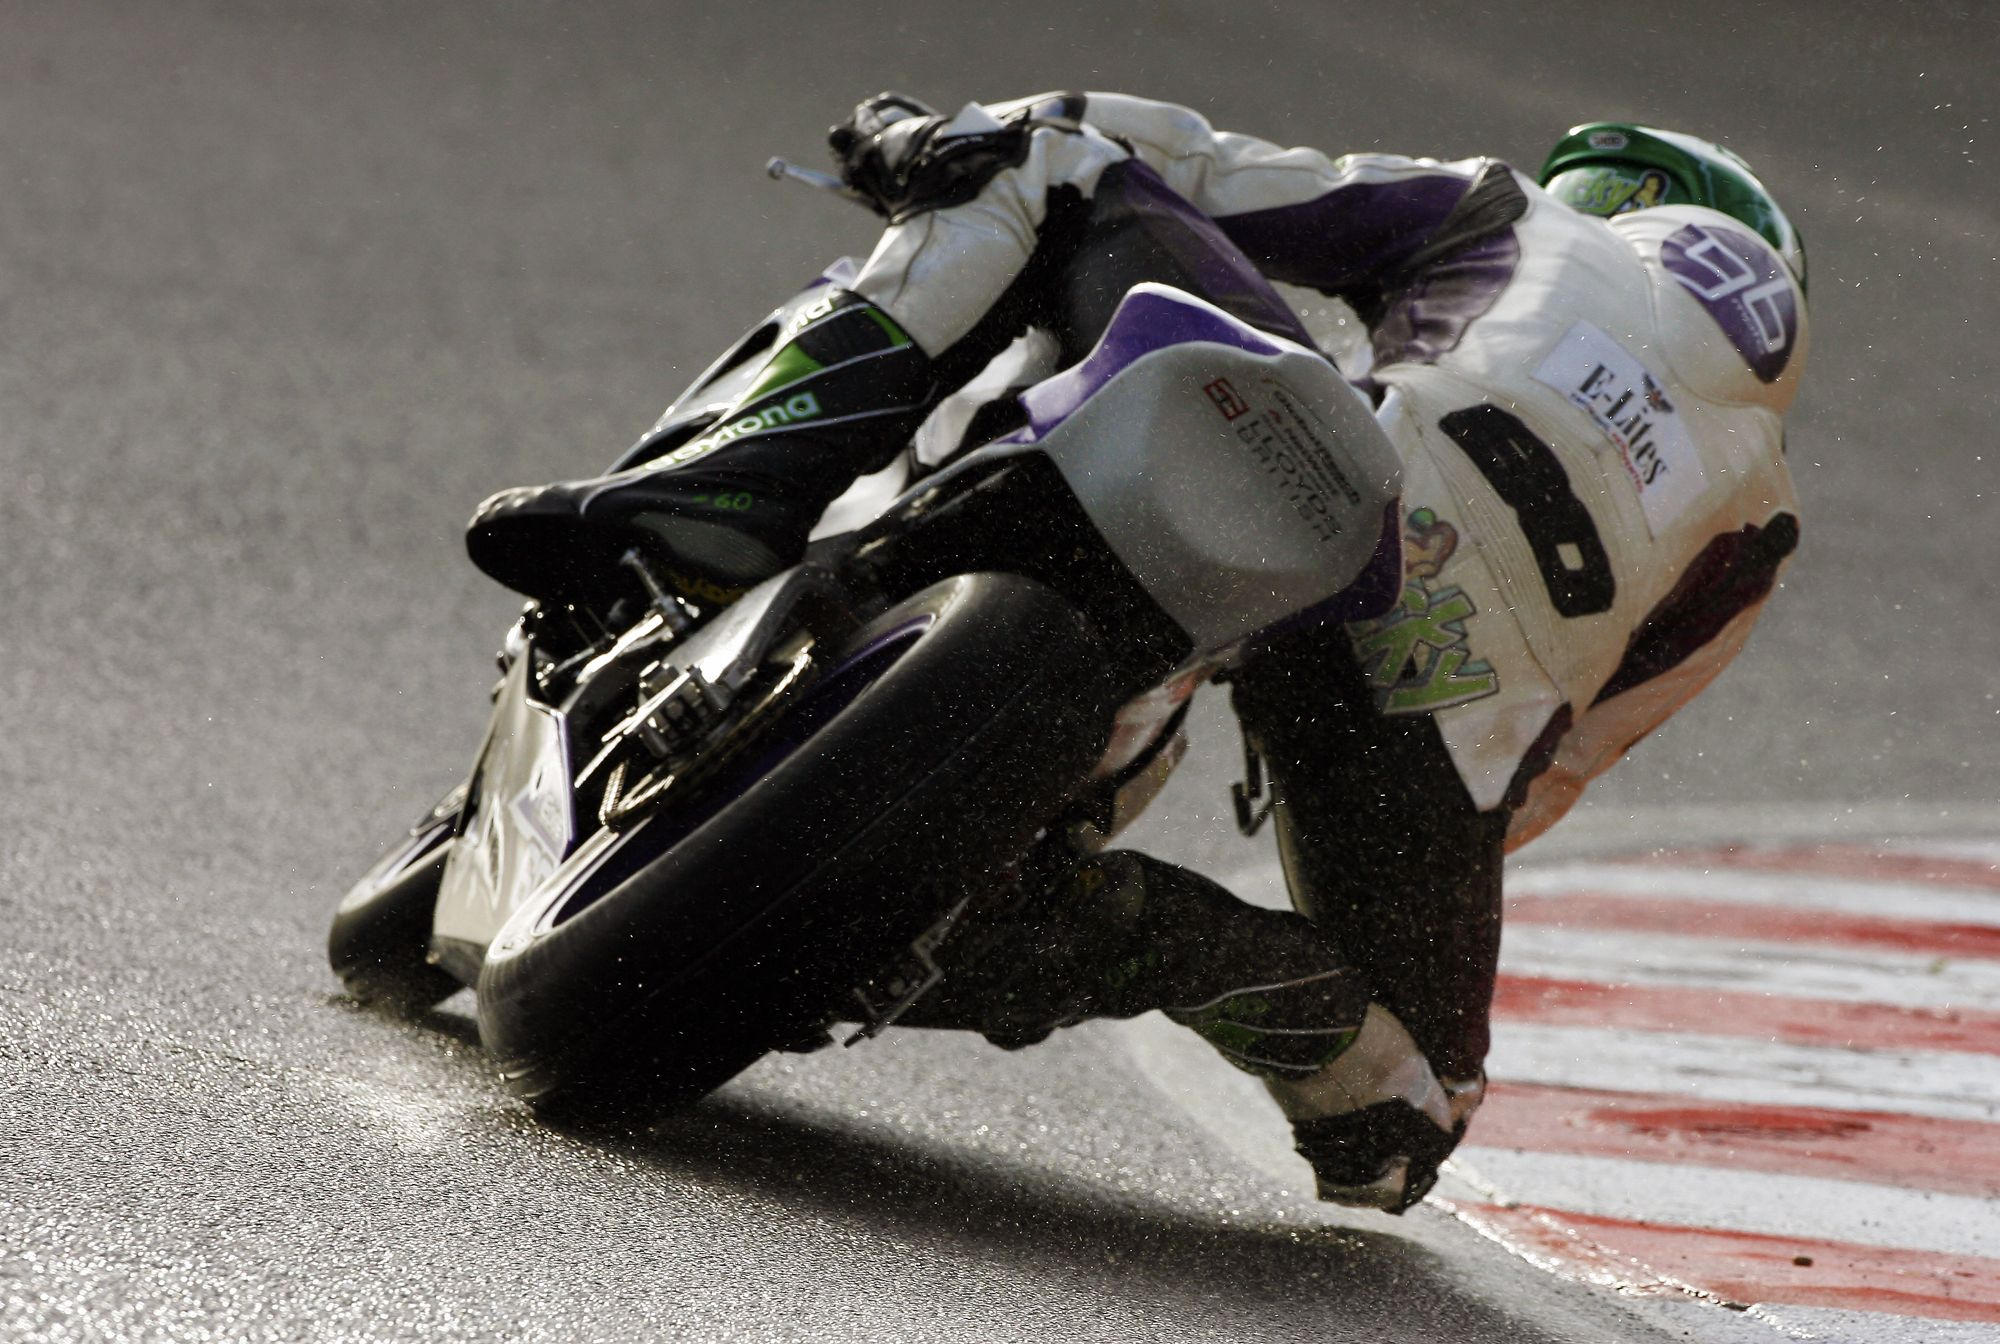 Our Website Is Full Of Race Bikes Race And Performance Parts And